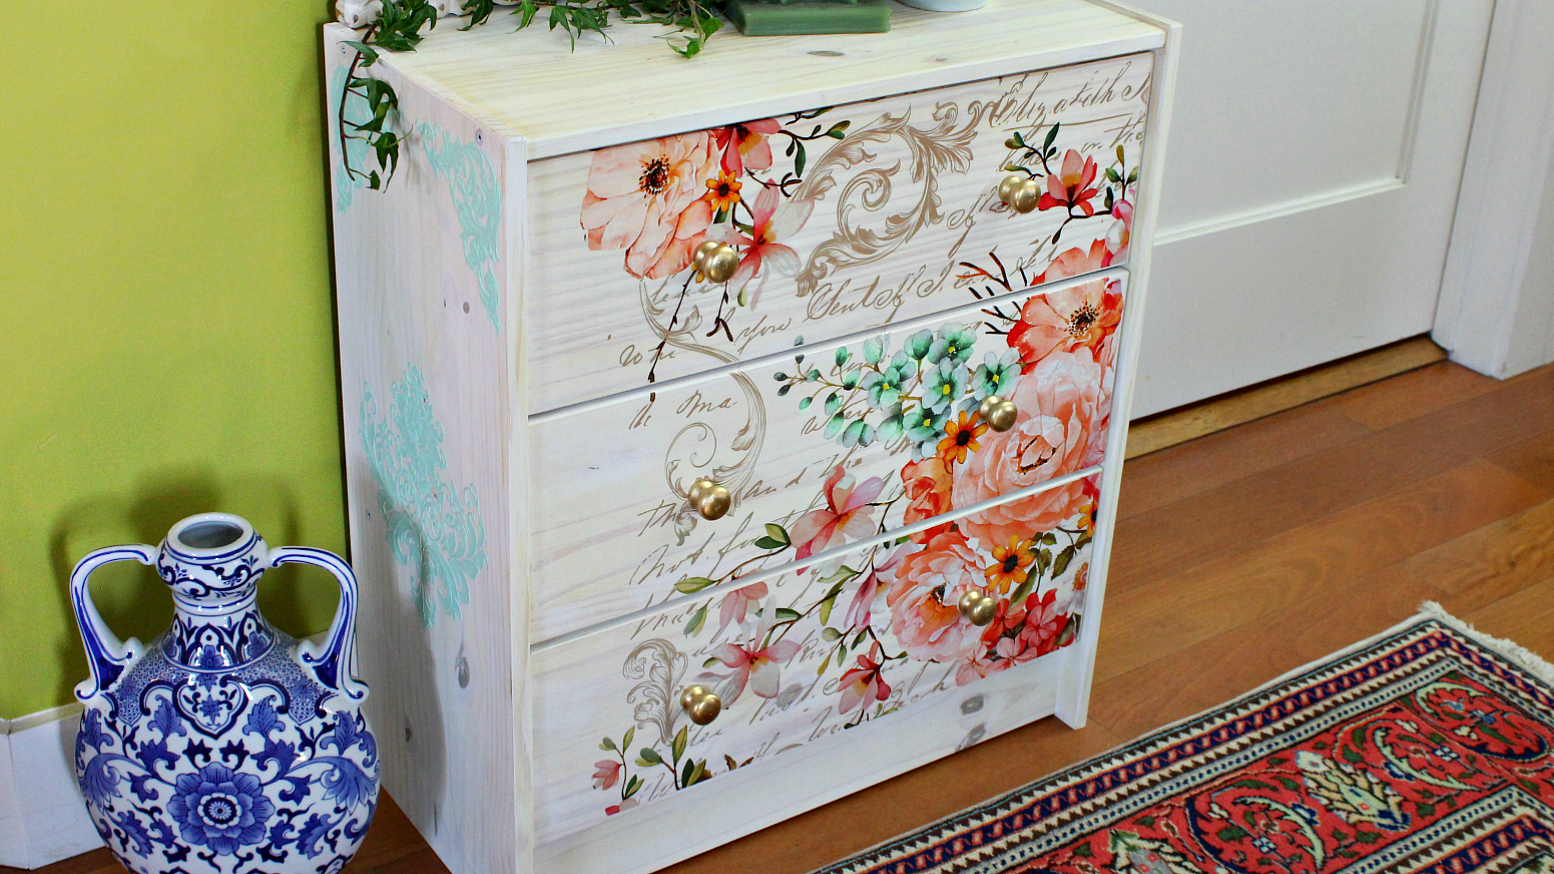 Here you can see the designs on the side of the dresser using the Chalk Paste® and 3D stencils—just beautiful! It carried some of the bold color to the sides for added detail that enhances the overall project.  Here are the [re]design products used for this project: